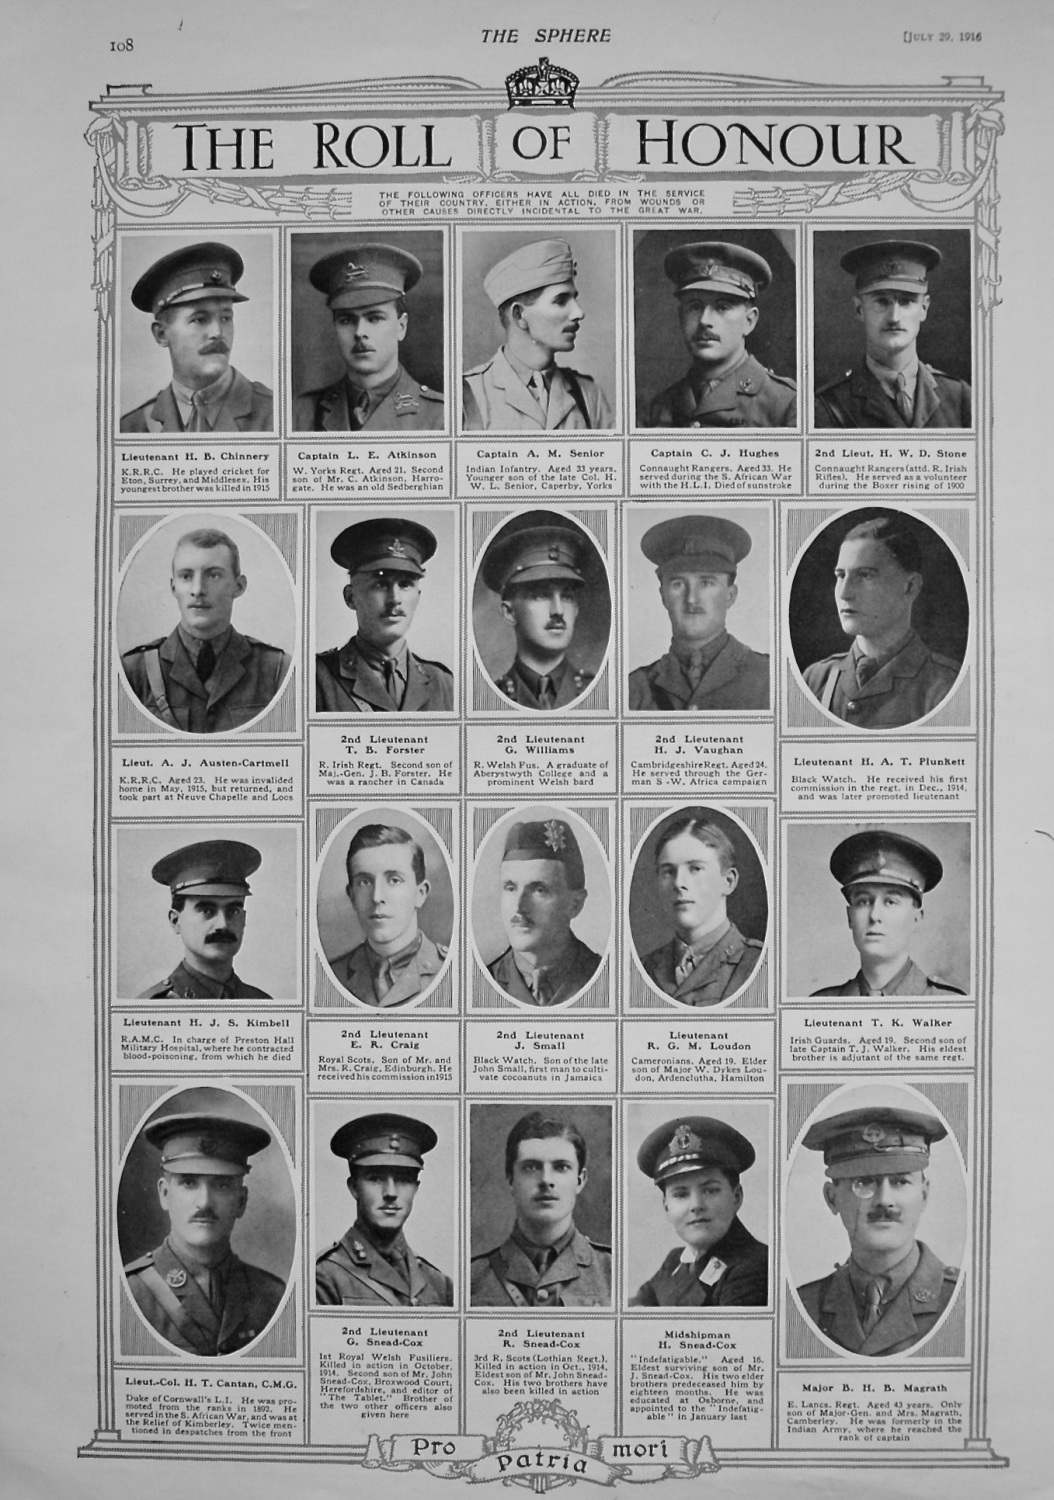 The Roll of Honour. July 29th, 1916.